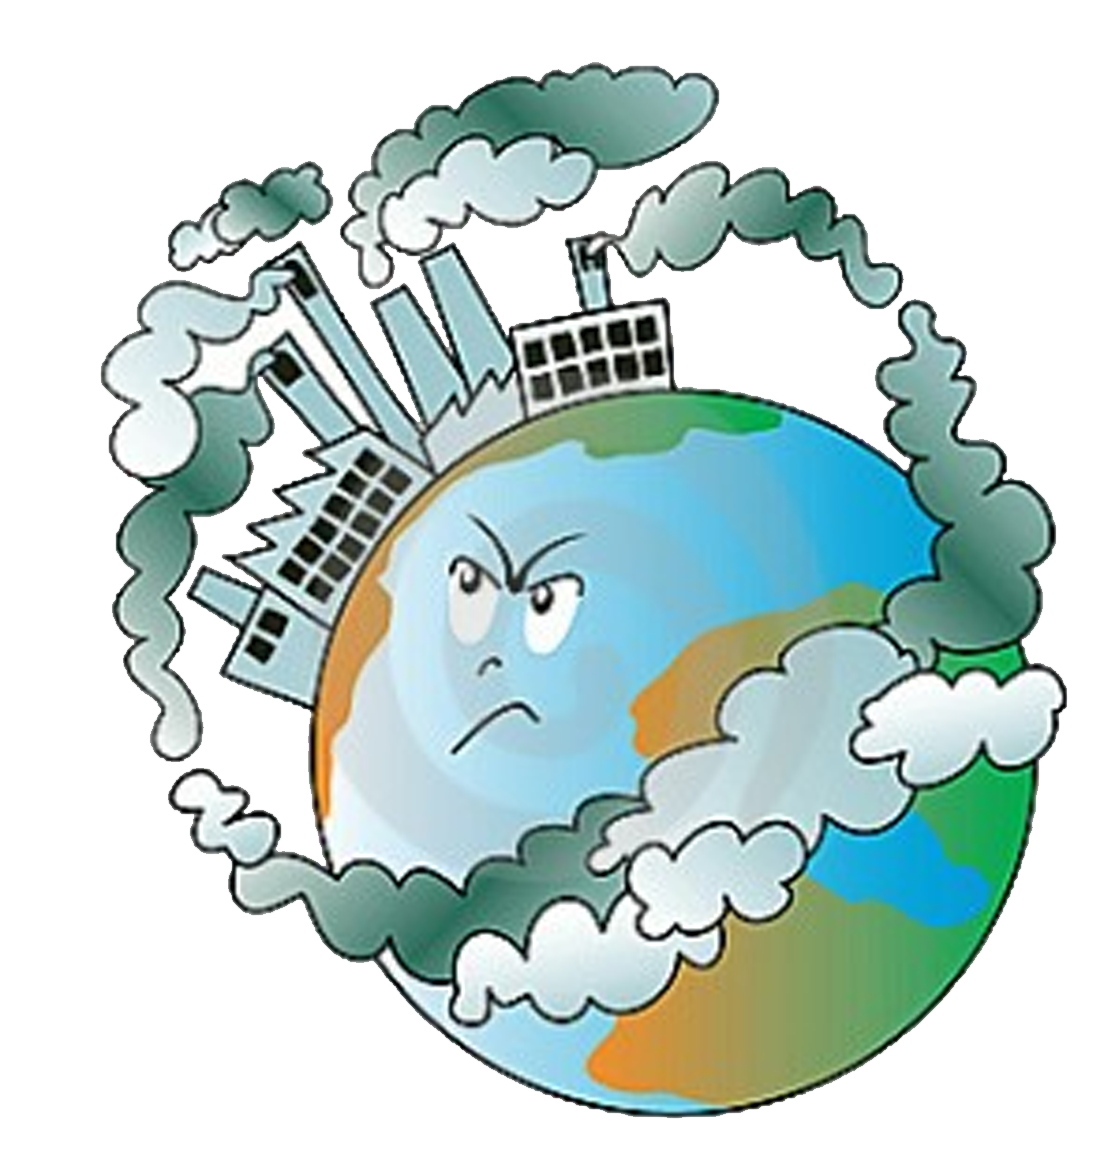 Air pollution soil contamination water pollution clip art natural